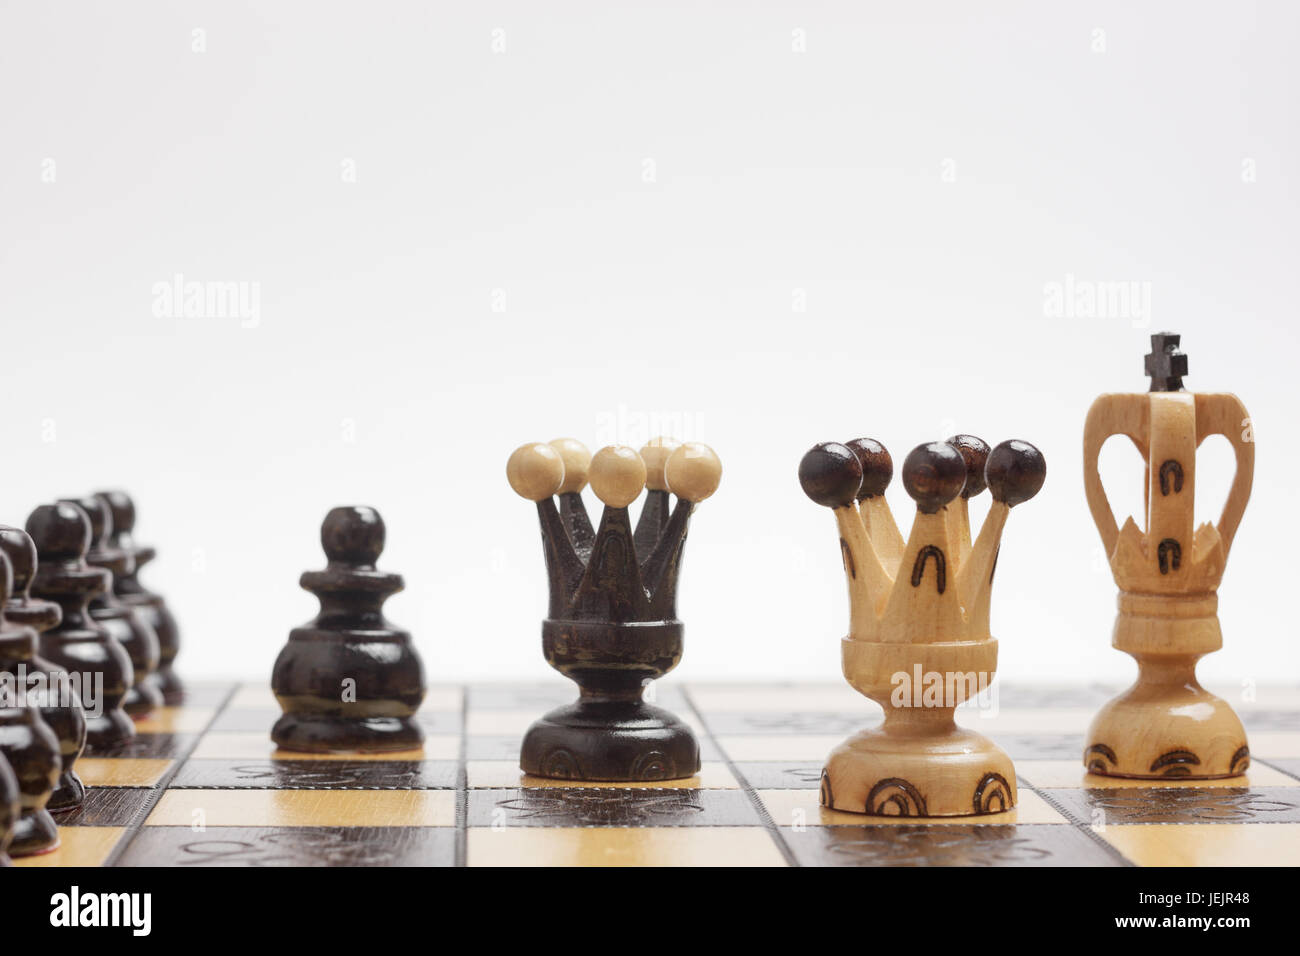 Strategy and tactics in a game of chess - Stock Image